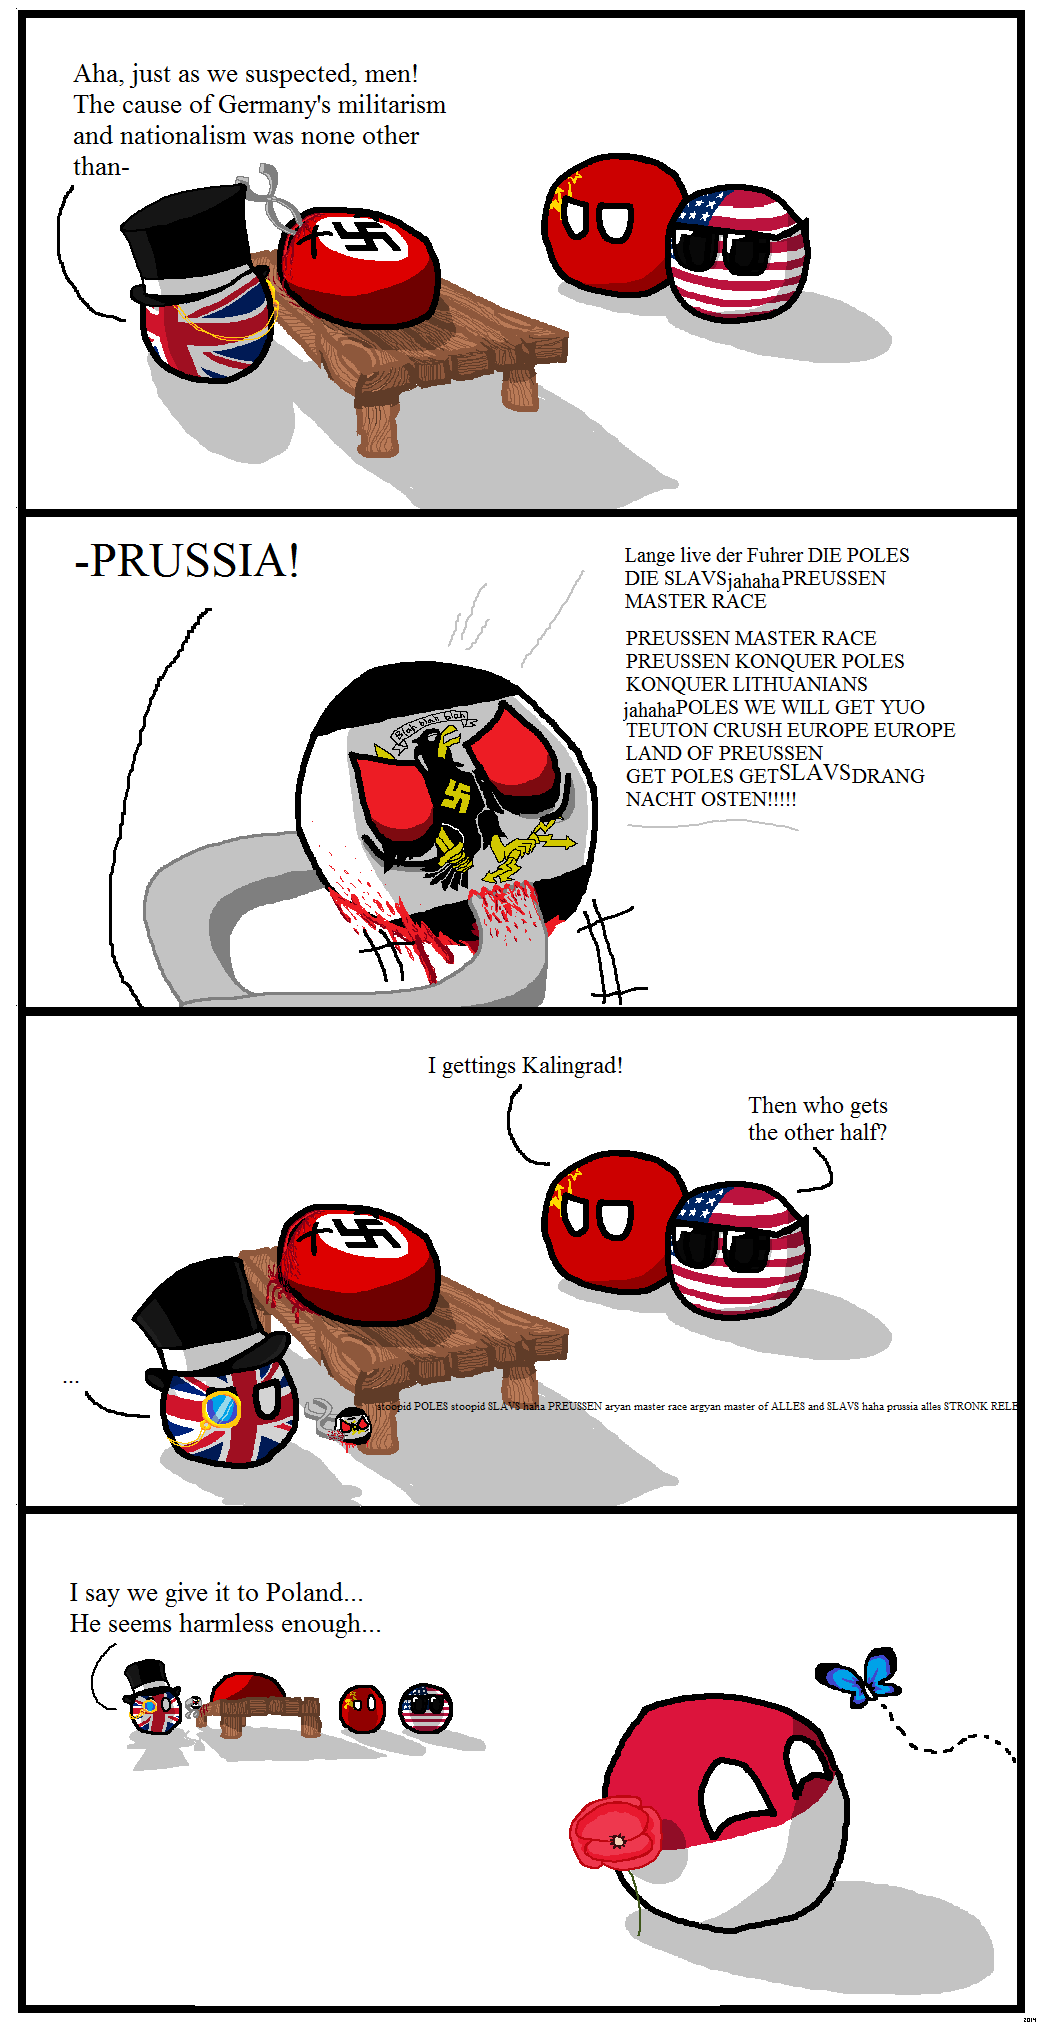 The Prussian Curse